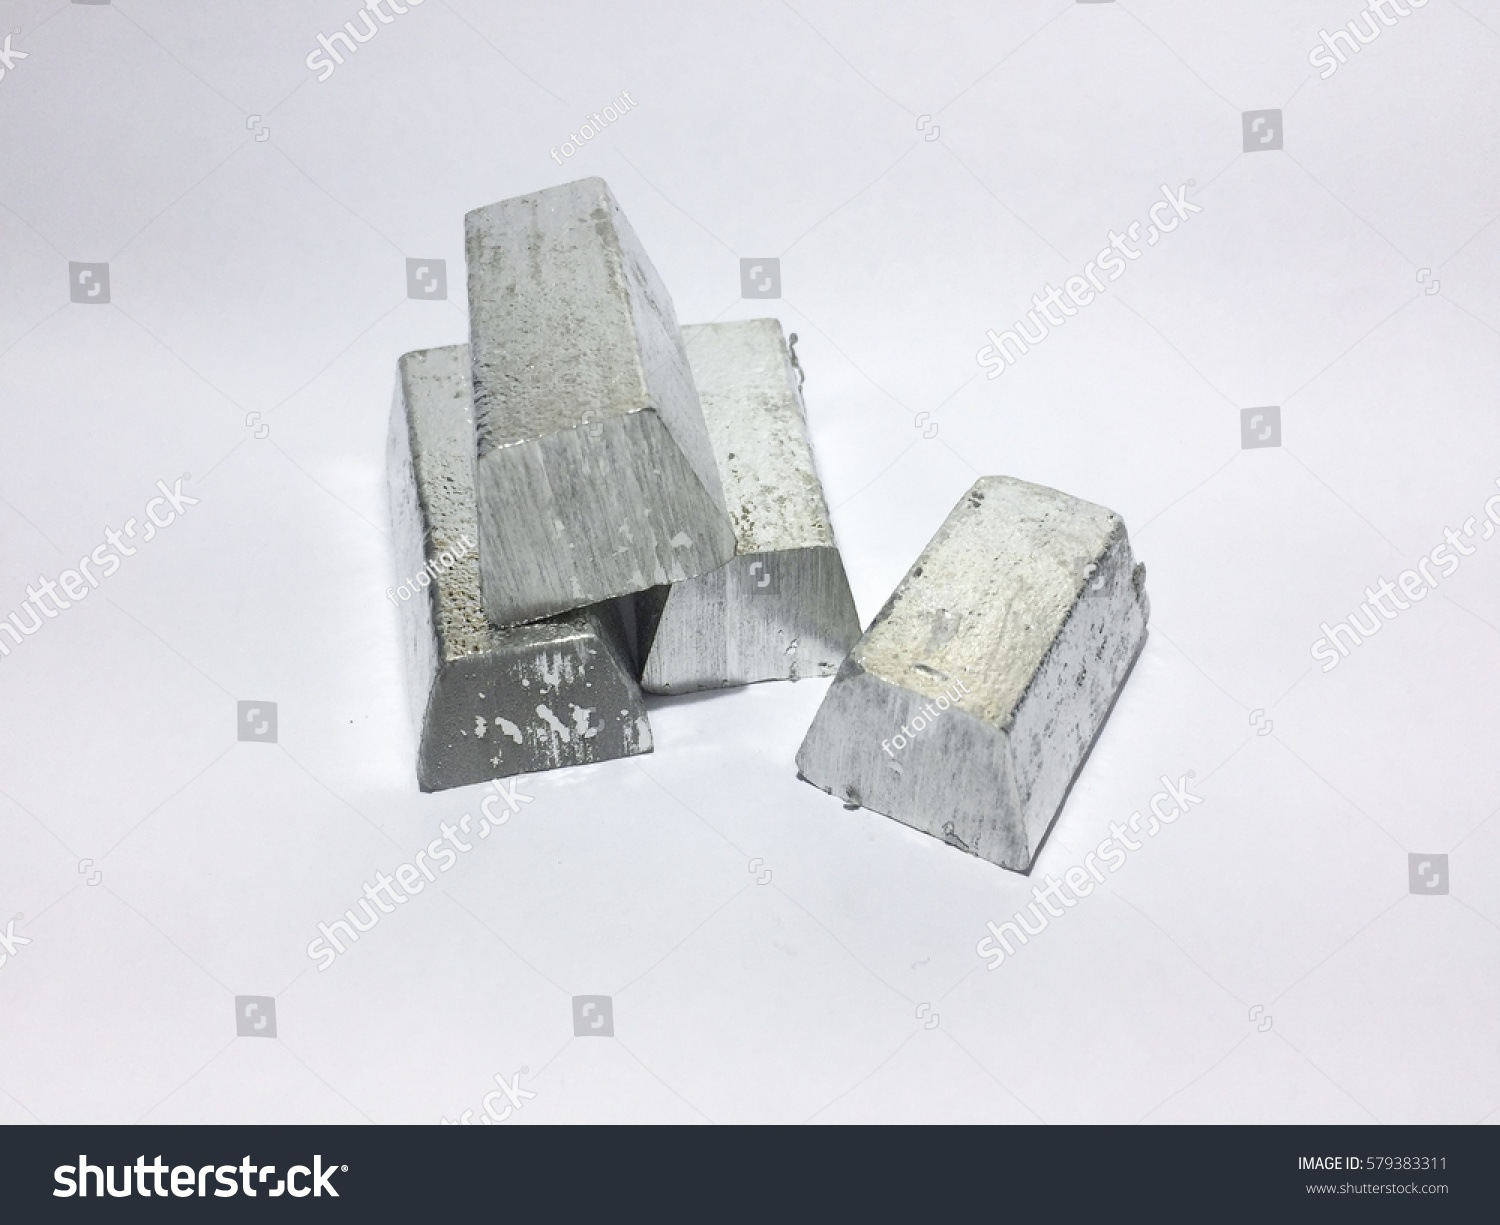 Alloy named tin chemical element symbol stock photo 579383311 an alloy named tin chemical element symbol sn atomic number 50 biocorpaavc Image collections